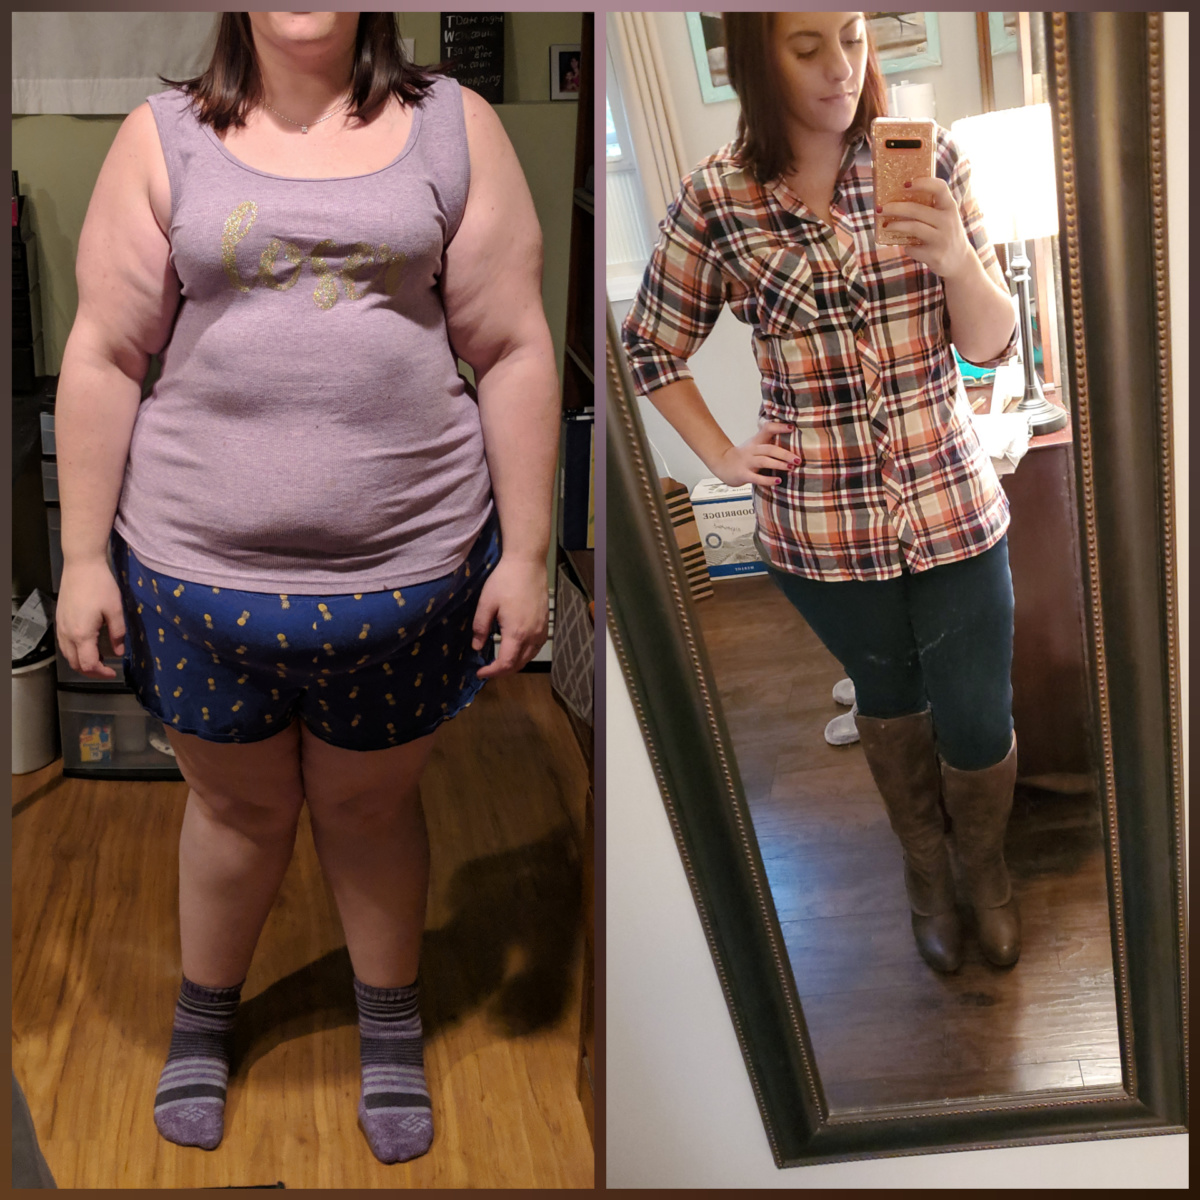 130 lb weight loss – 326 to 195